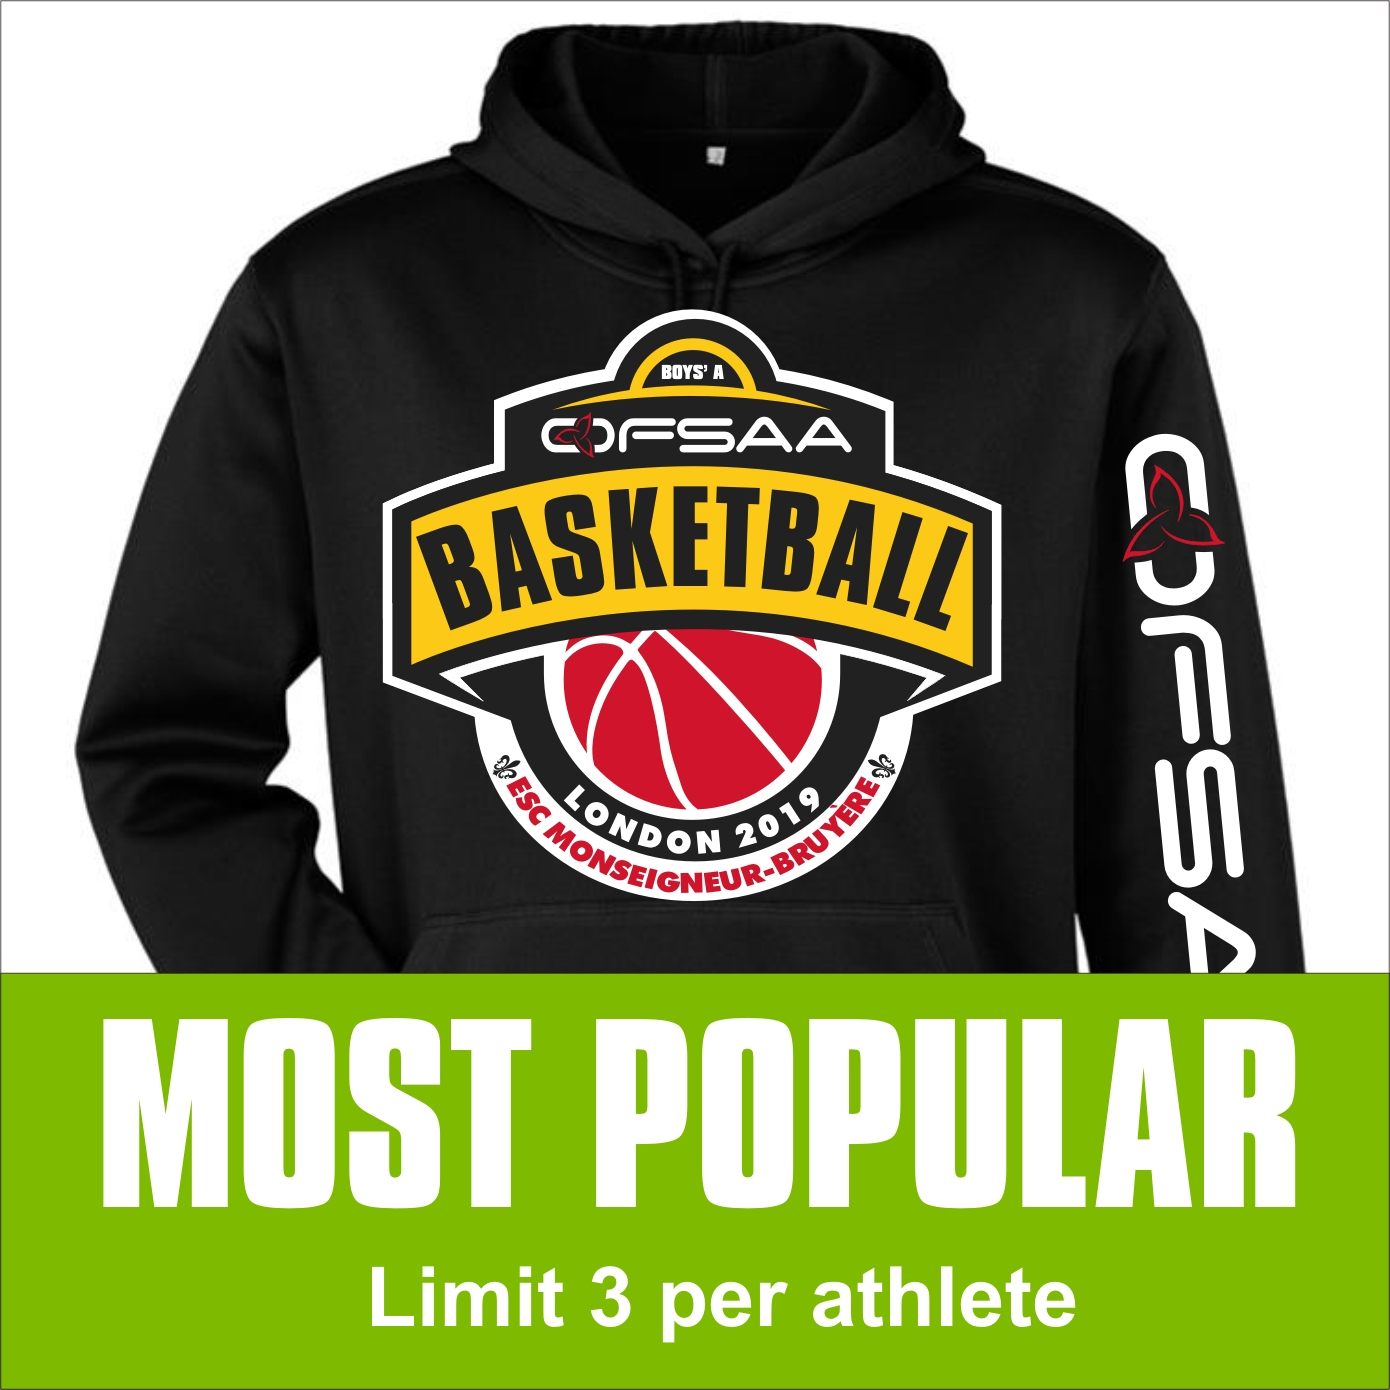 2019 Boys A Basketball Hoodie single black.jpg